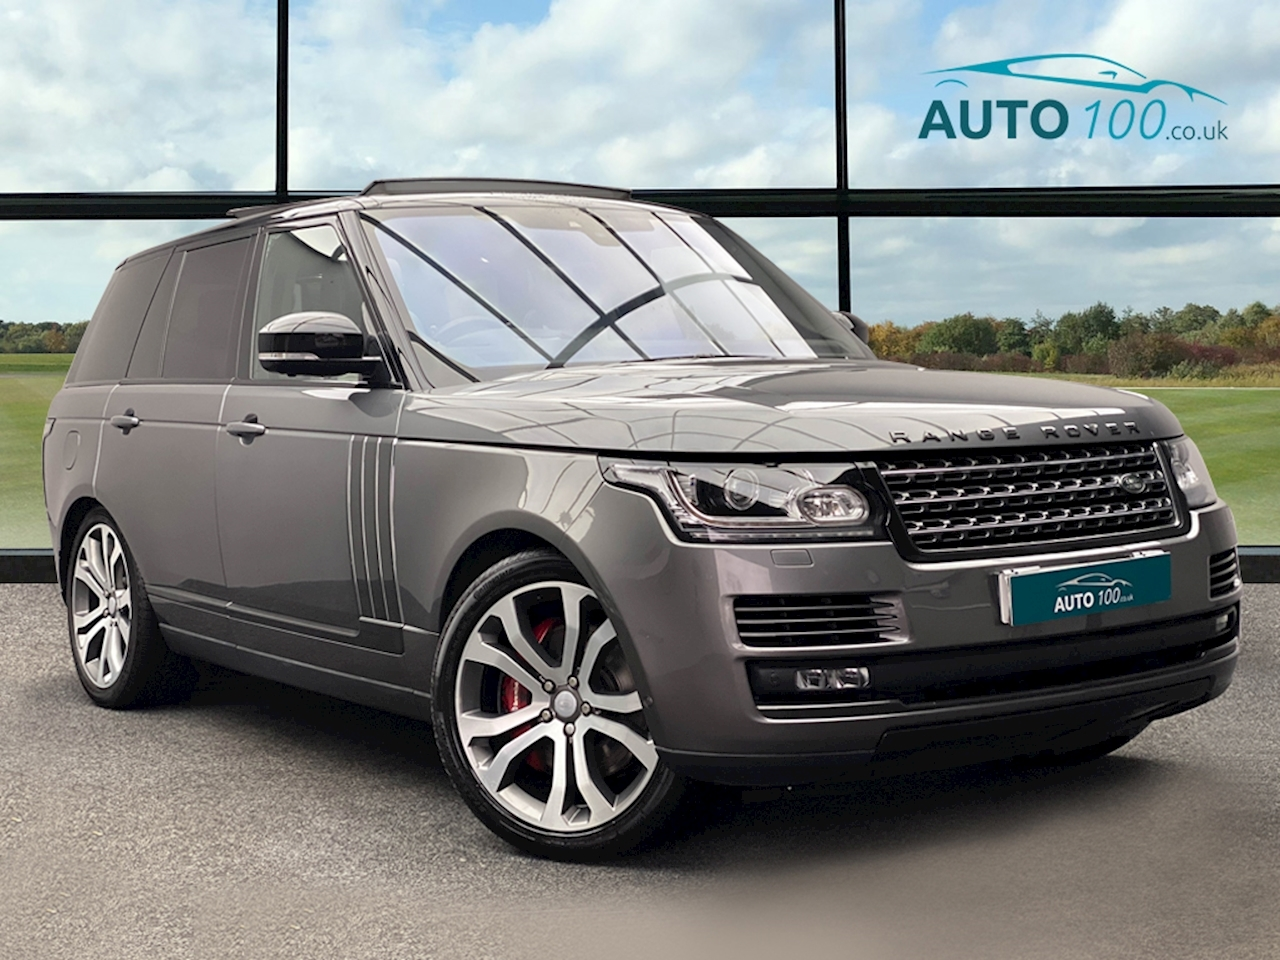 Land Rover Range Rover SV Autobiography Dynamic SUV 5.0 Auto Petrol